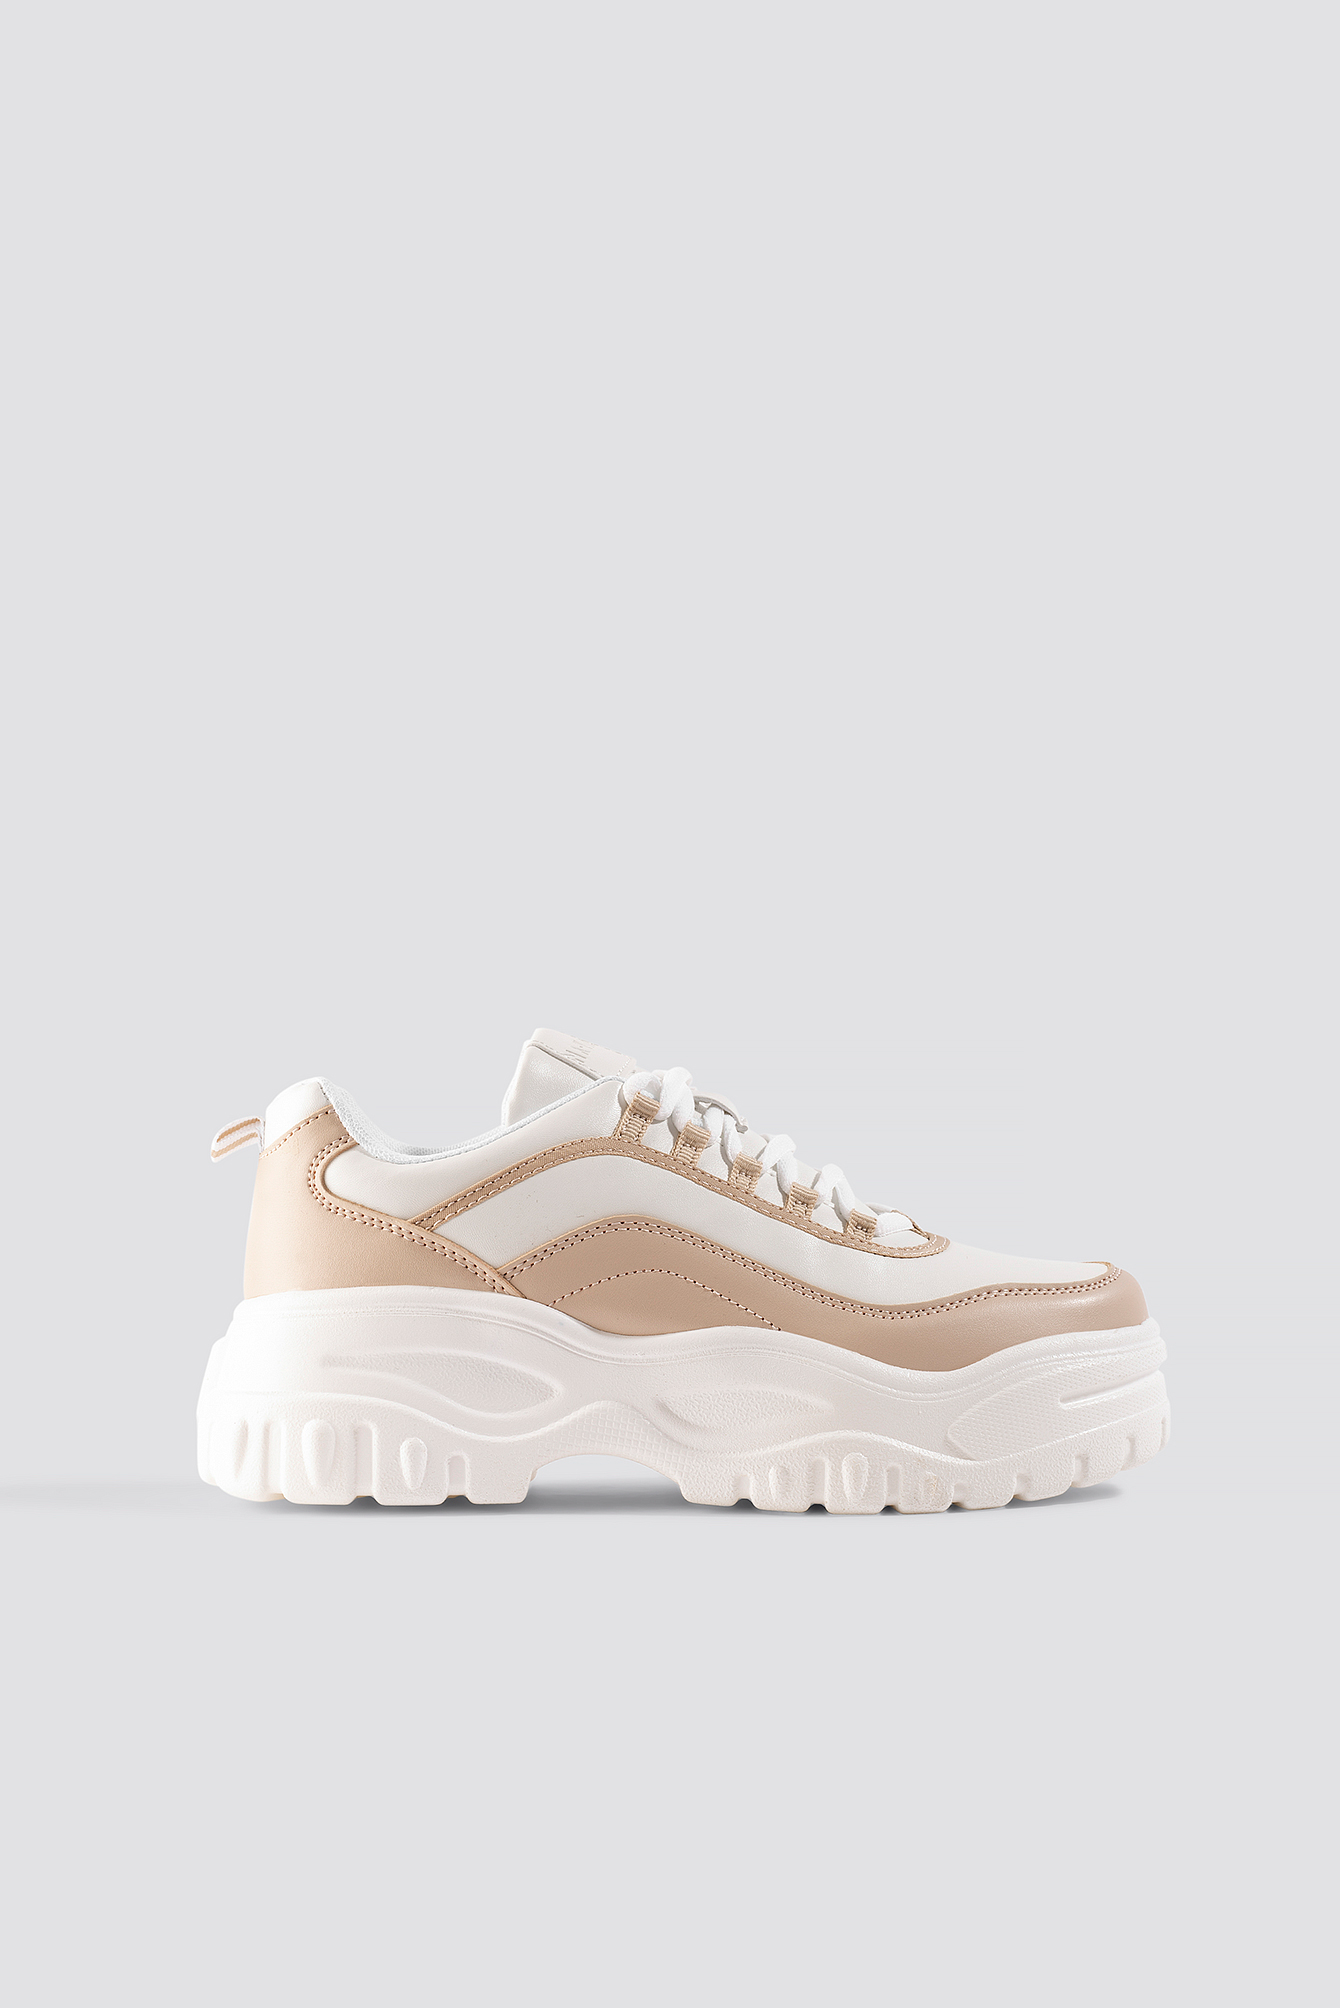 na-kd shoes -  Chunky Sole Sneakers - White,Beige